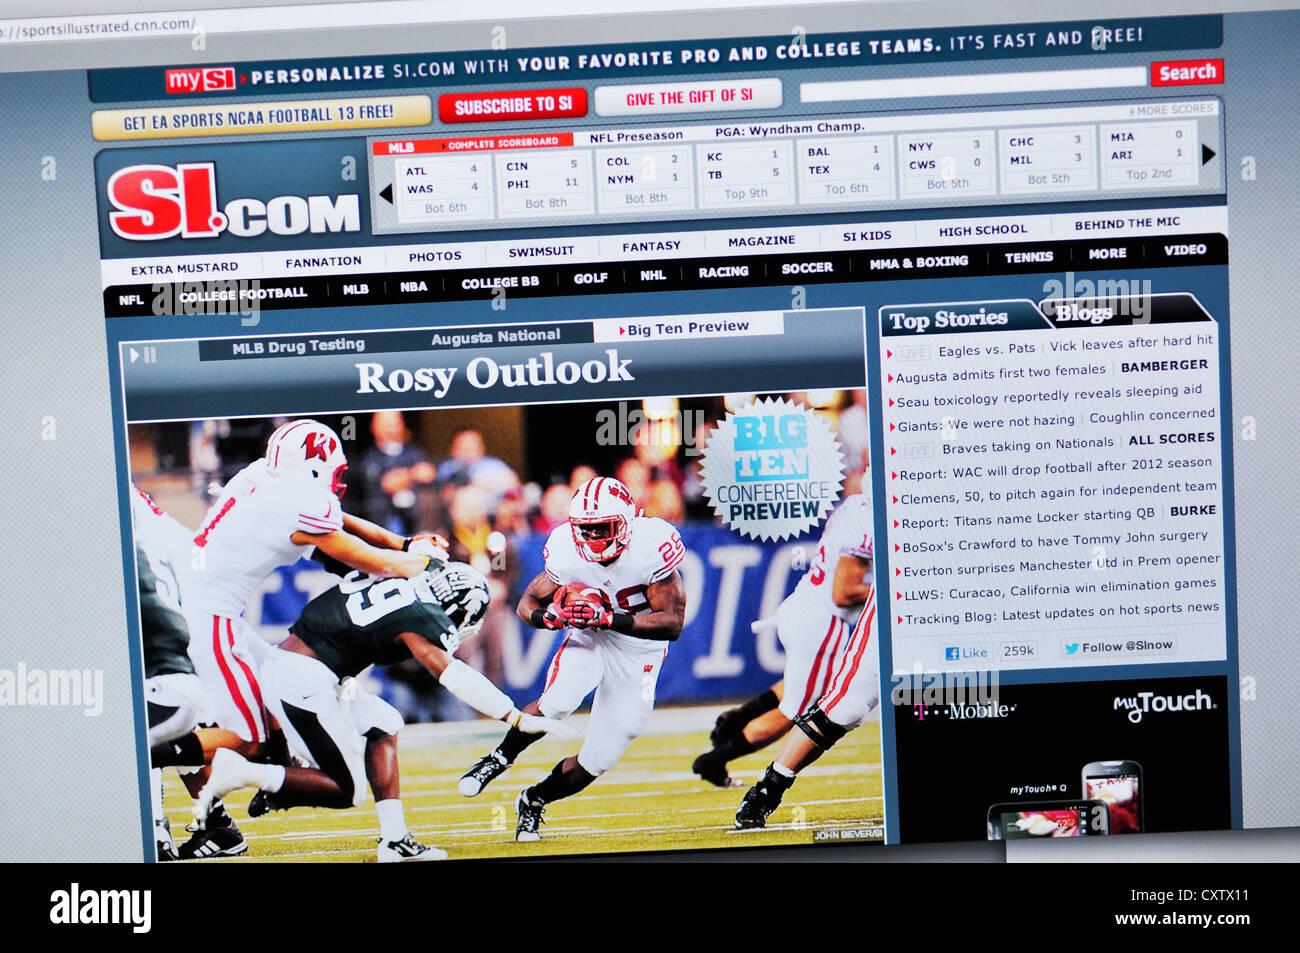 Sports Illustrated website - online sporting news Stock